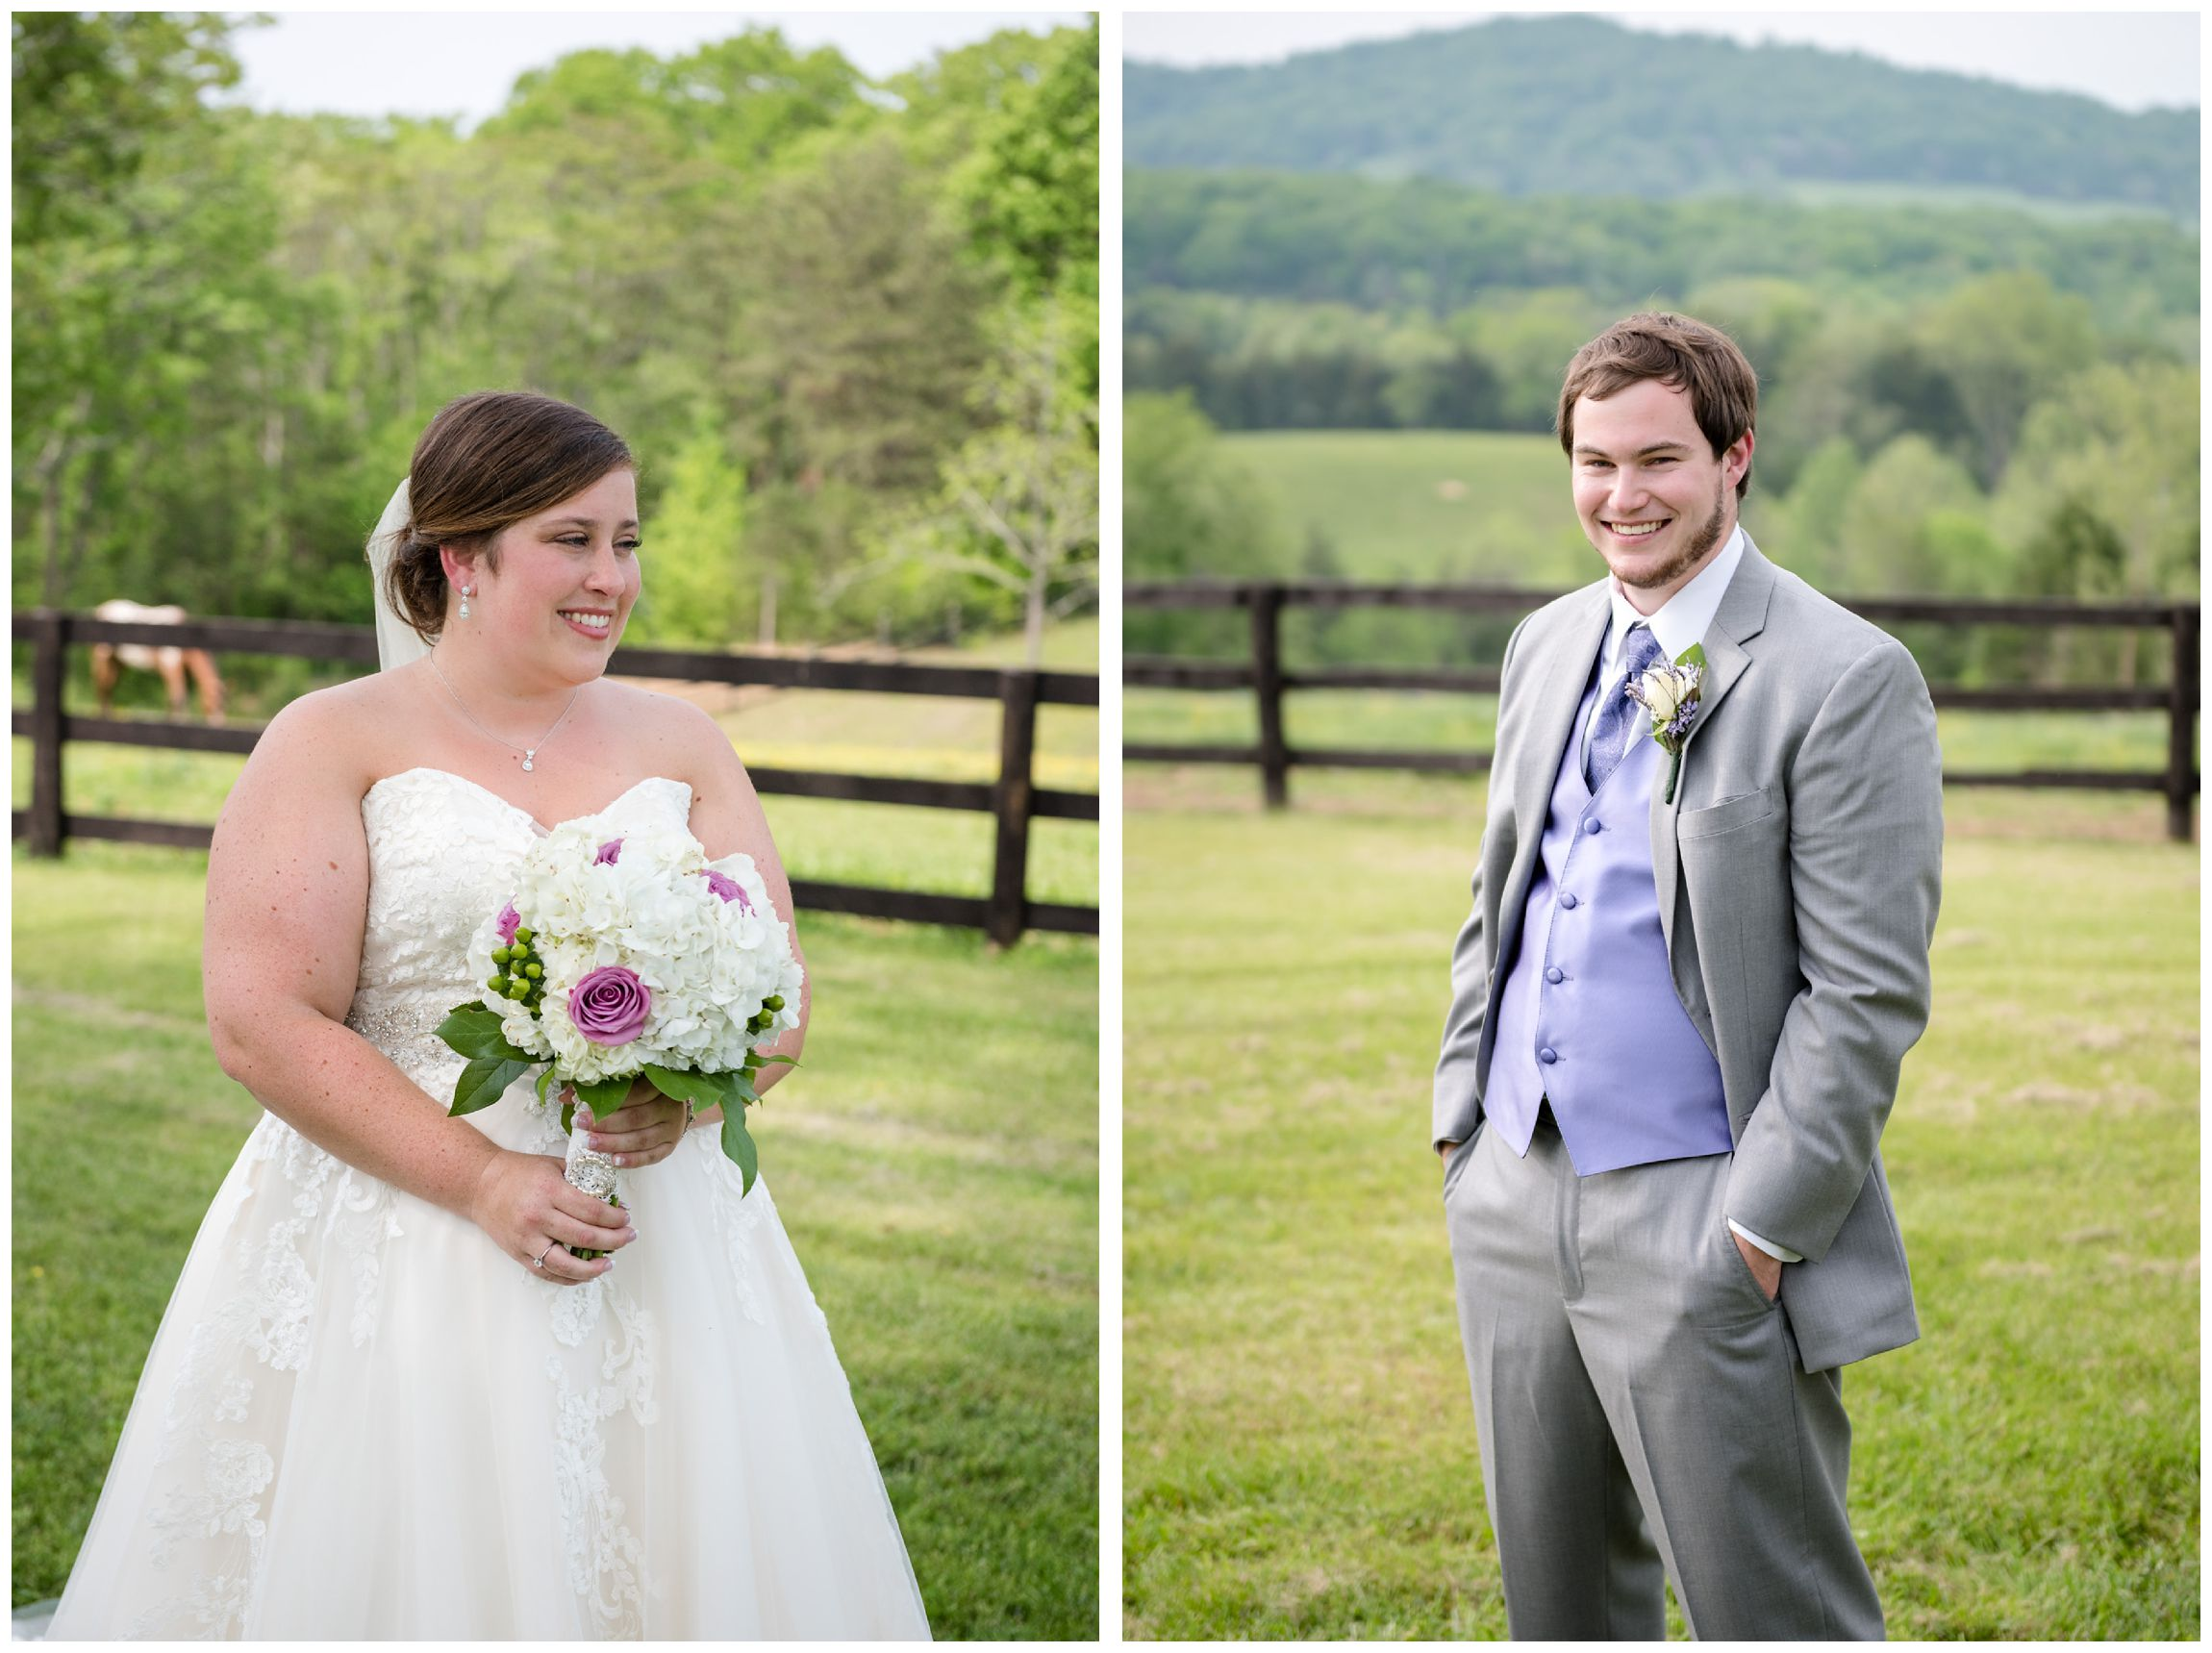 bride and groom at beautiful farm wedding in Virginia mountains